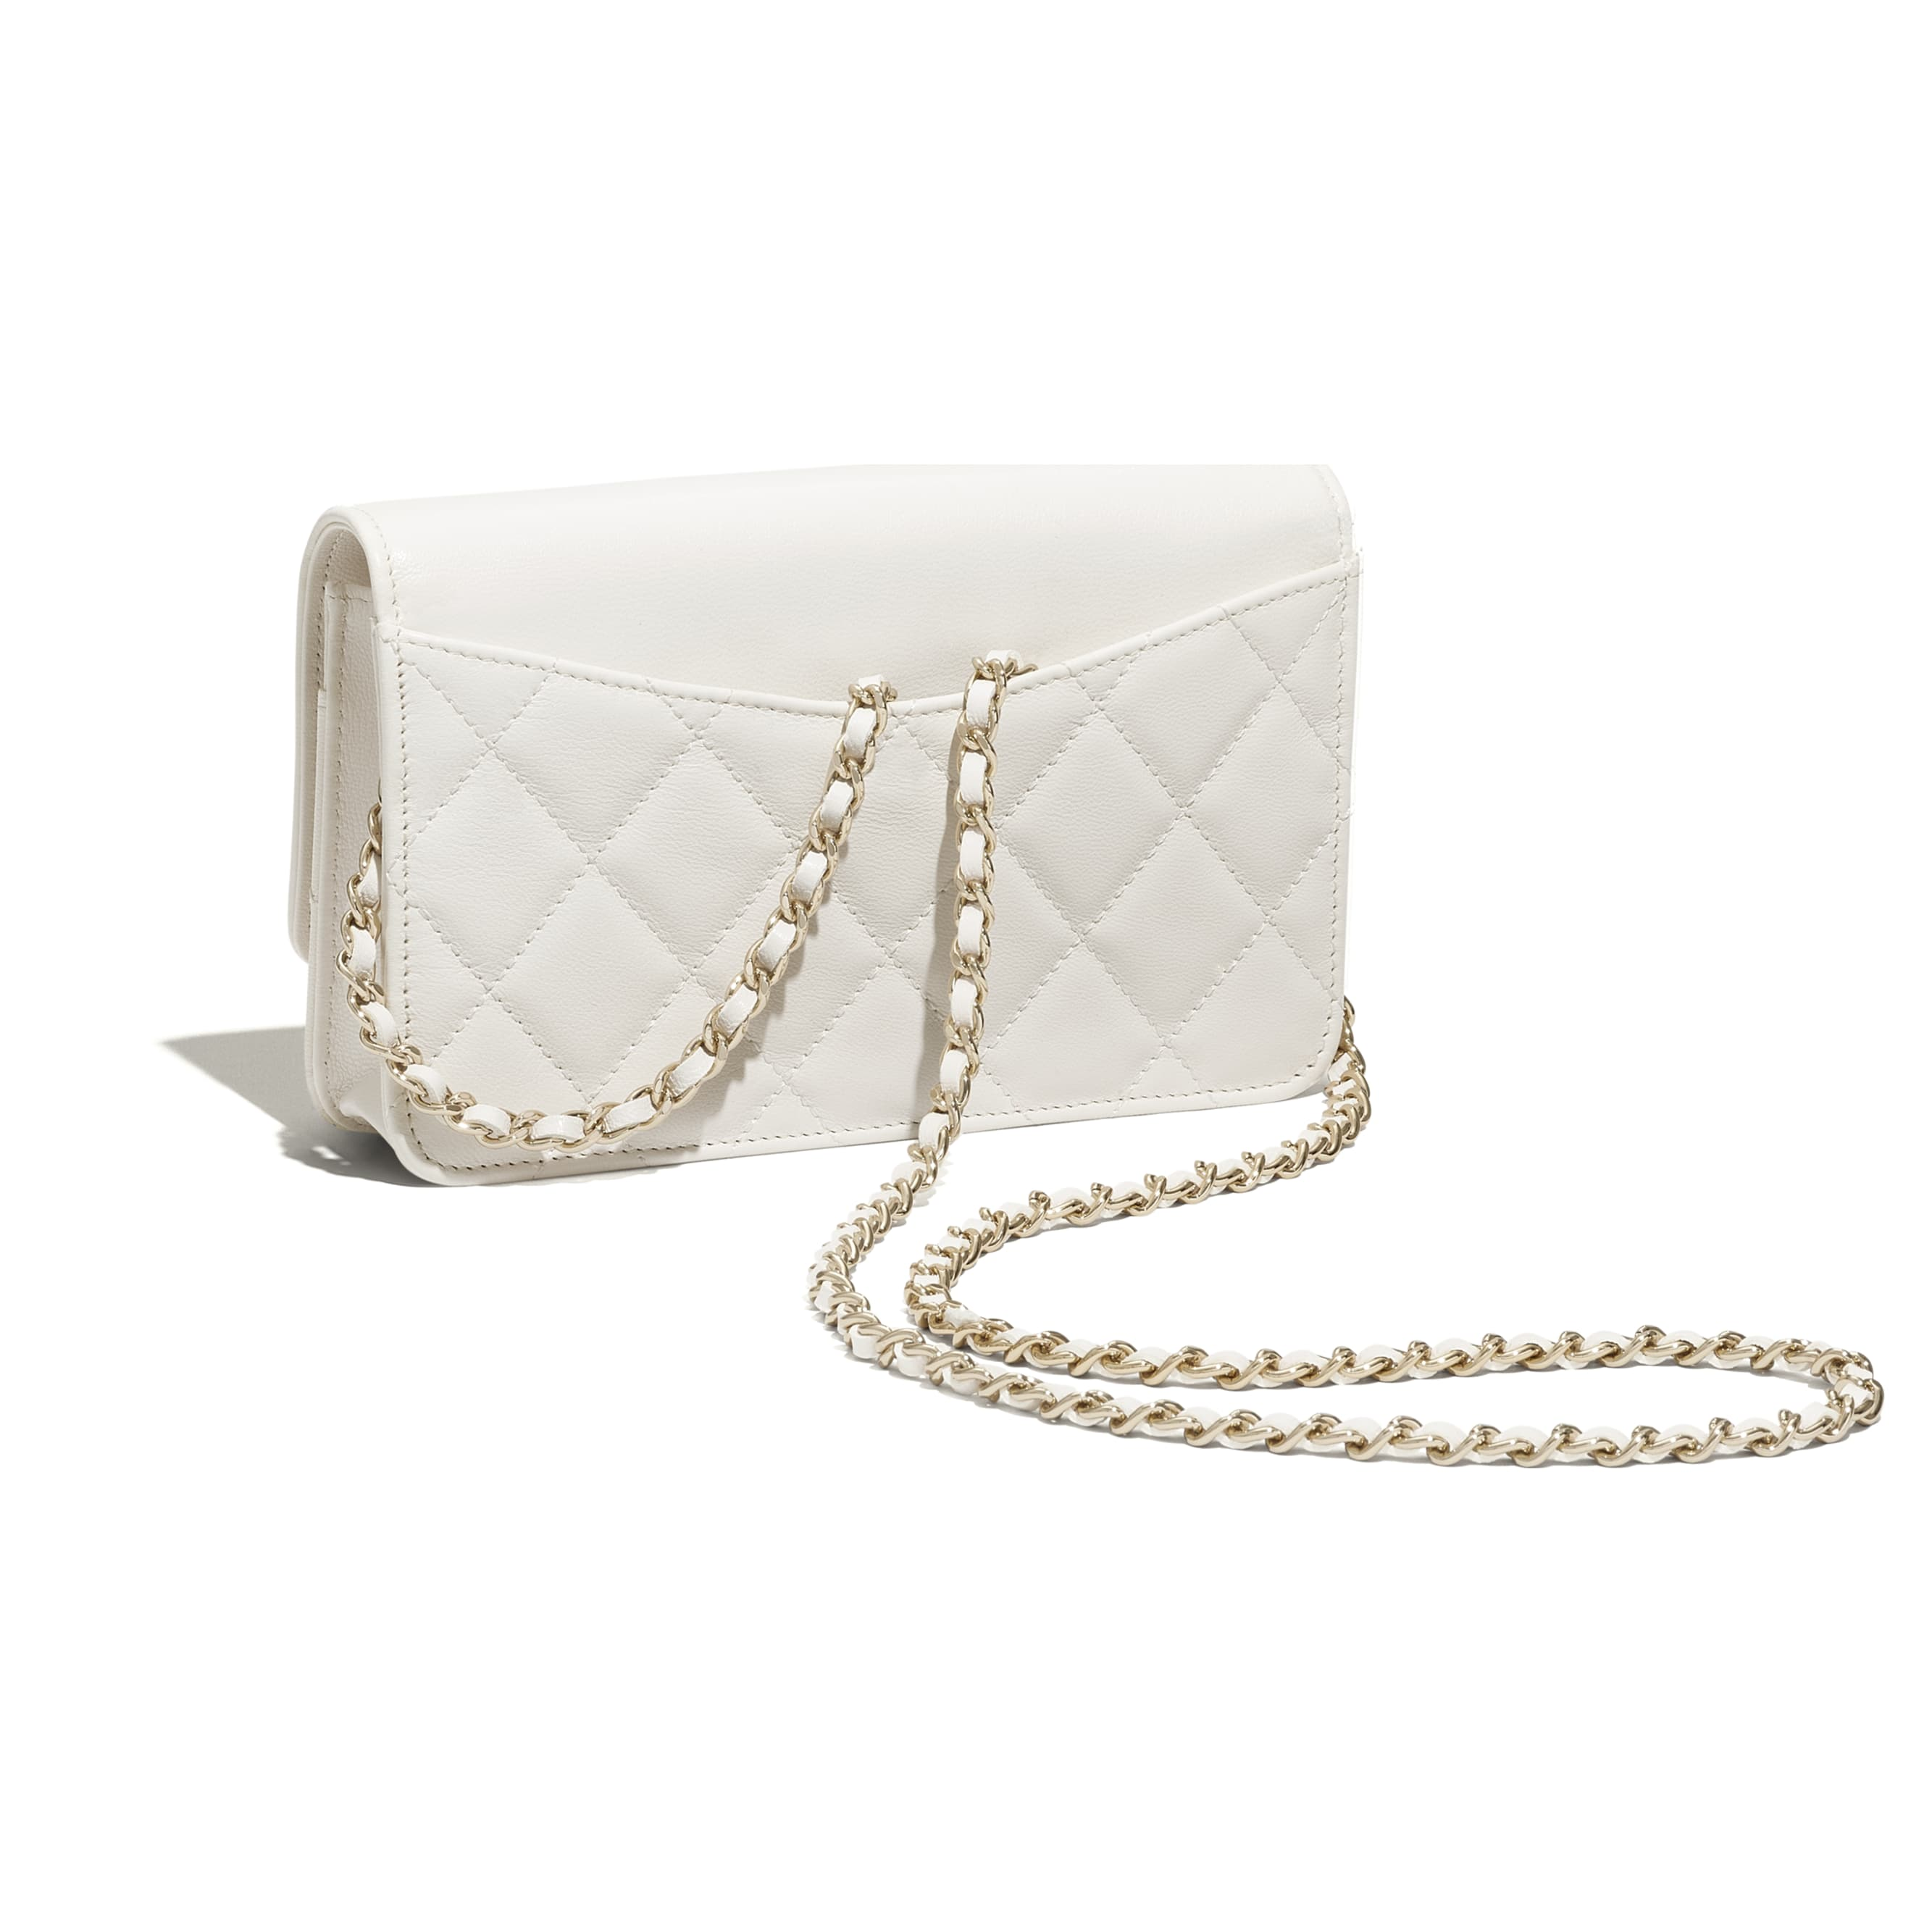 Wallet On Chain - White - Goatskin & Gold-Tone Metal - CHANEL - Extra view - see standard sized version